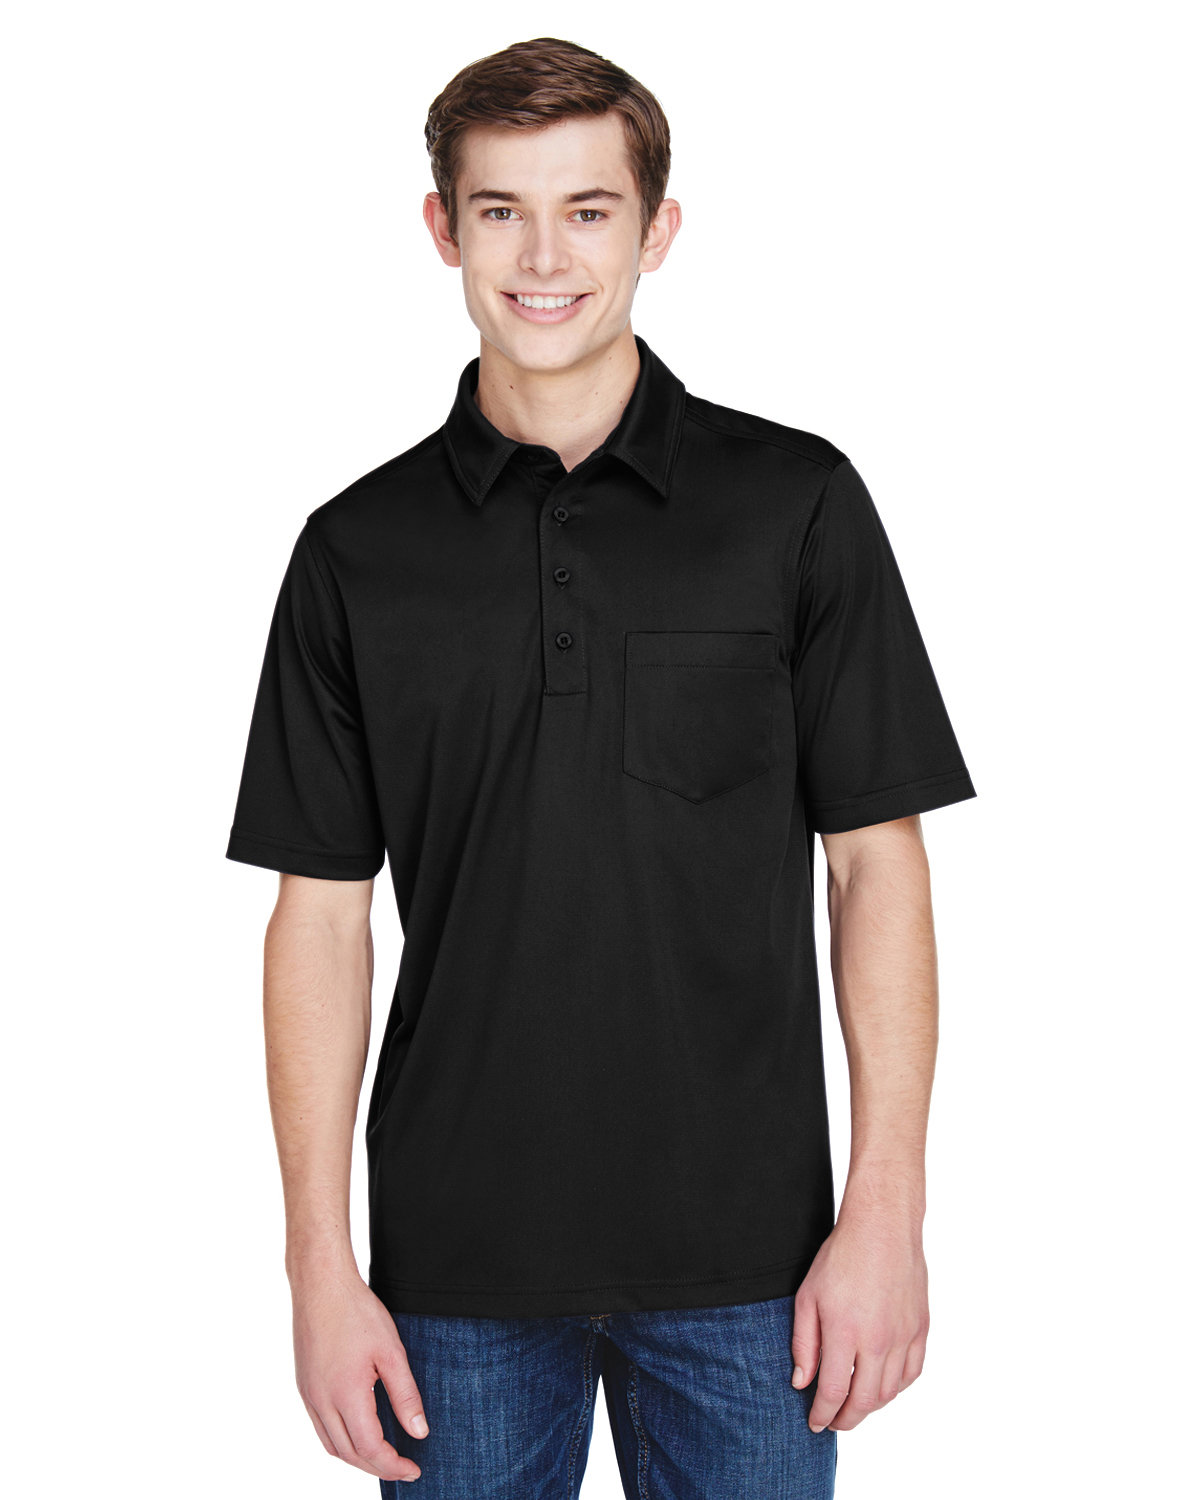 Extreme Men's Eperformance™ Shift Snag Protection Plus Polo BLACK